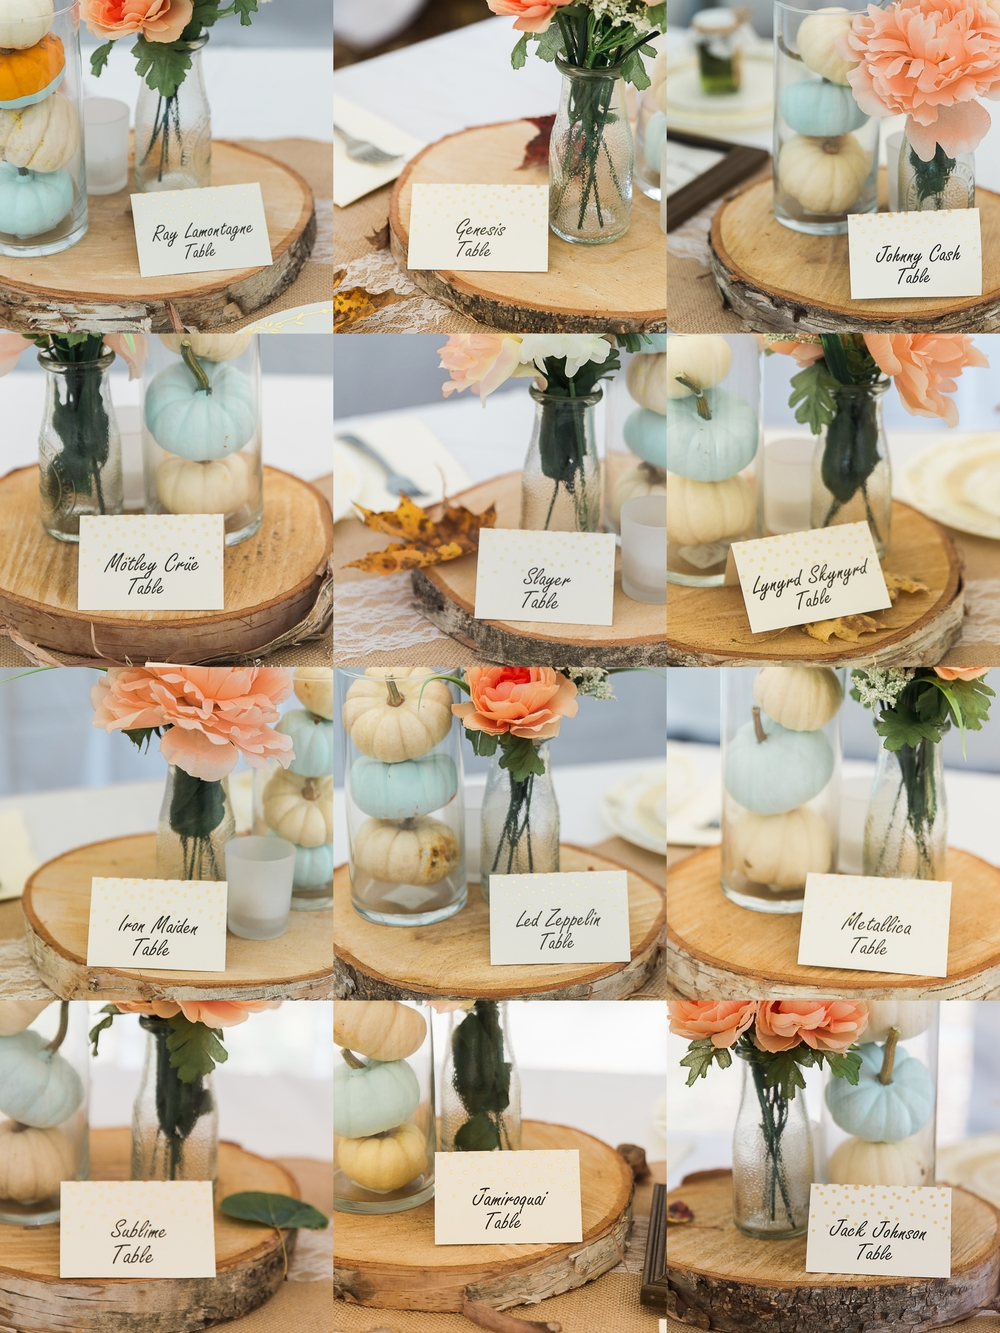 Table names, ftw!